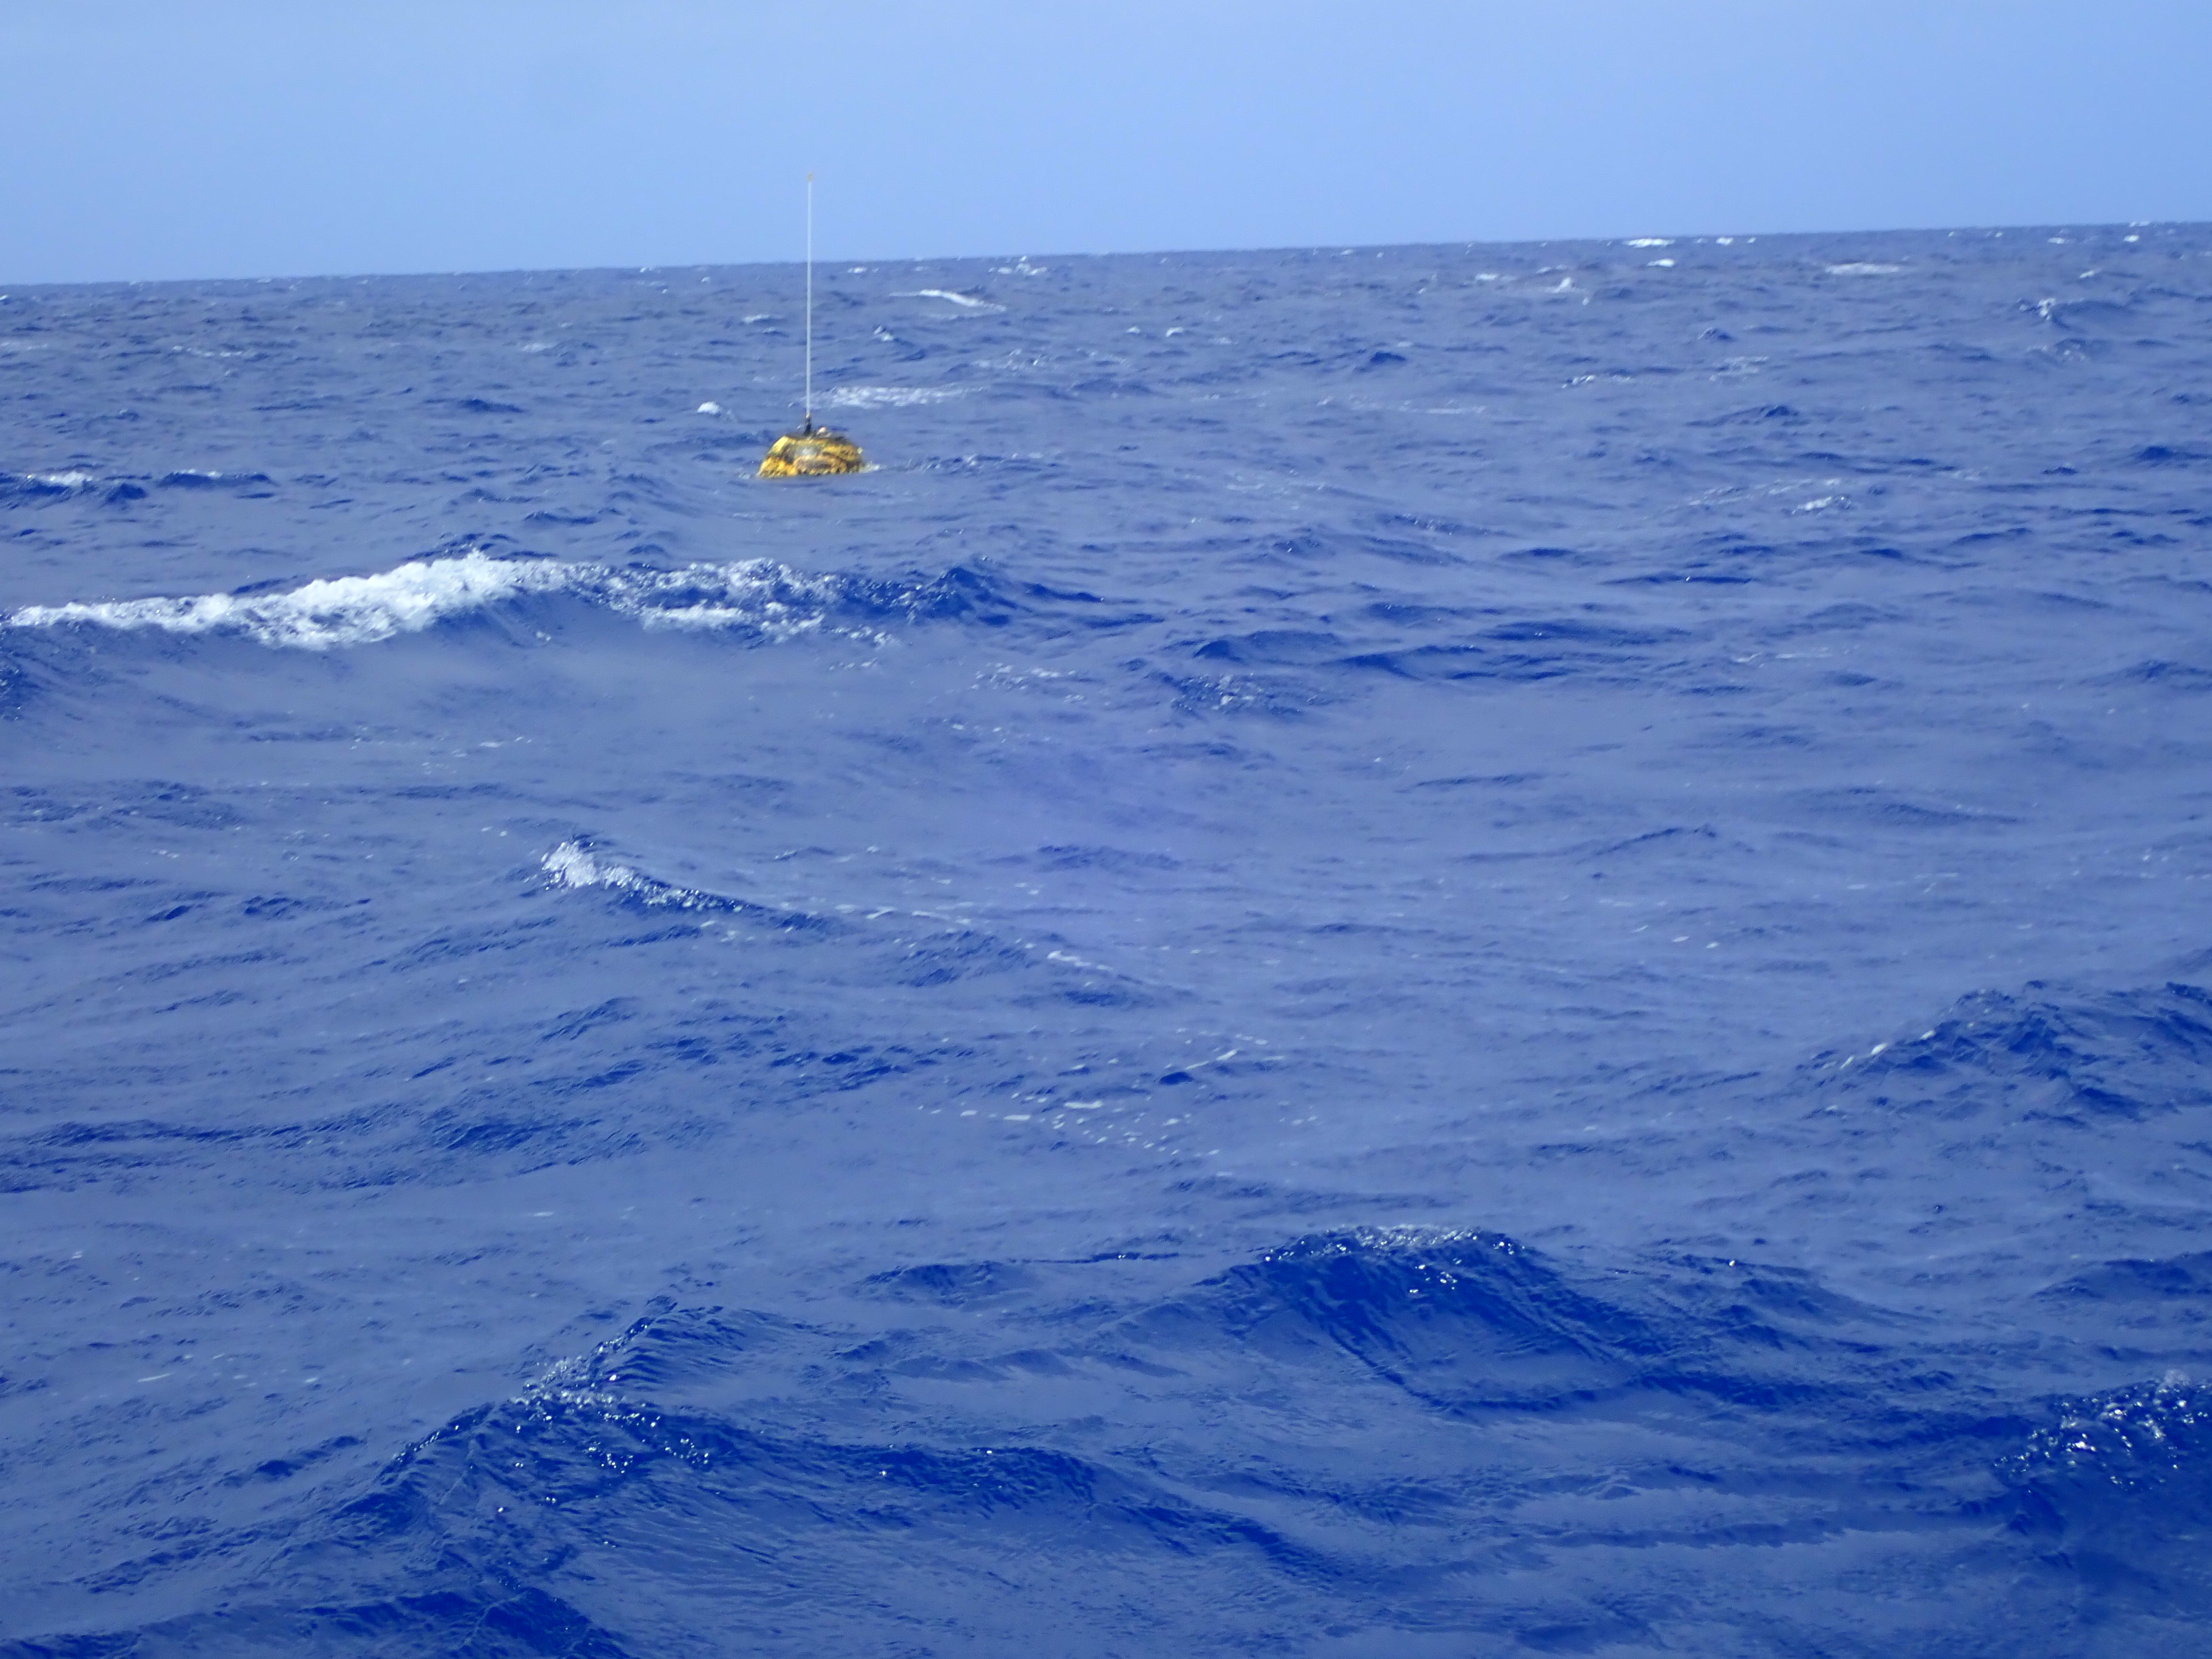 Drifting buoy in their sites